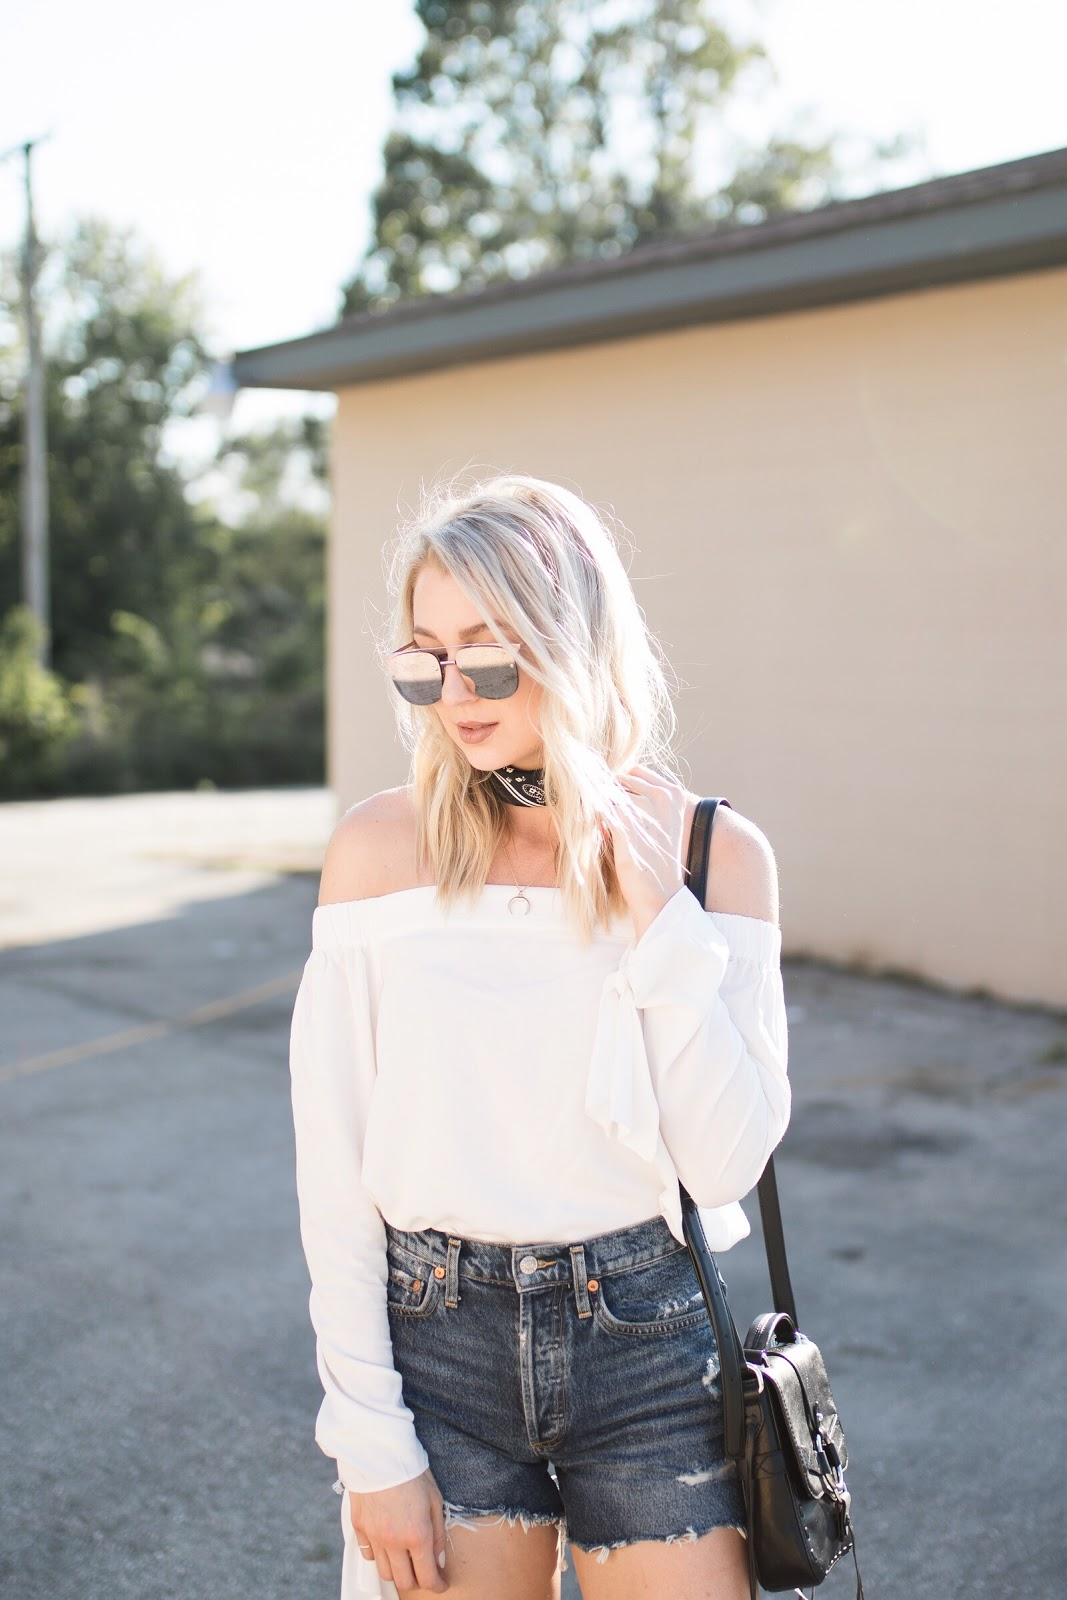 quay sunglasses, bandana scarf, white off-the-shoulder top, cutoff shorts